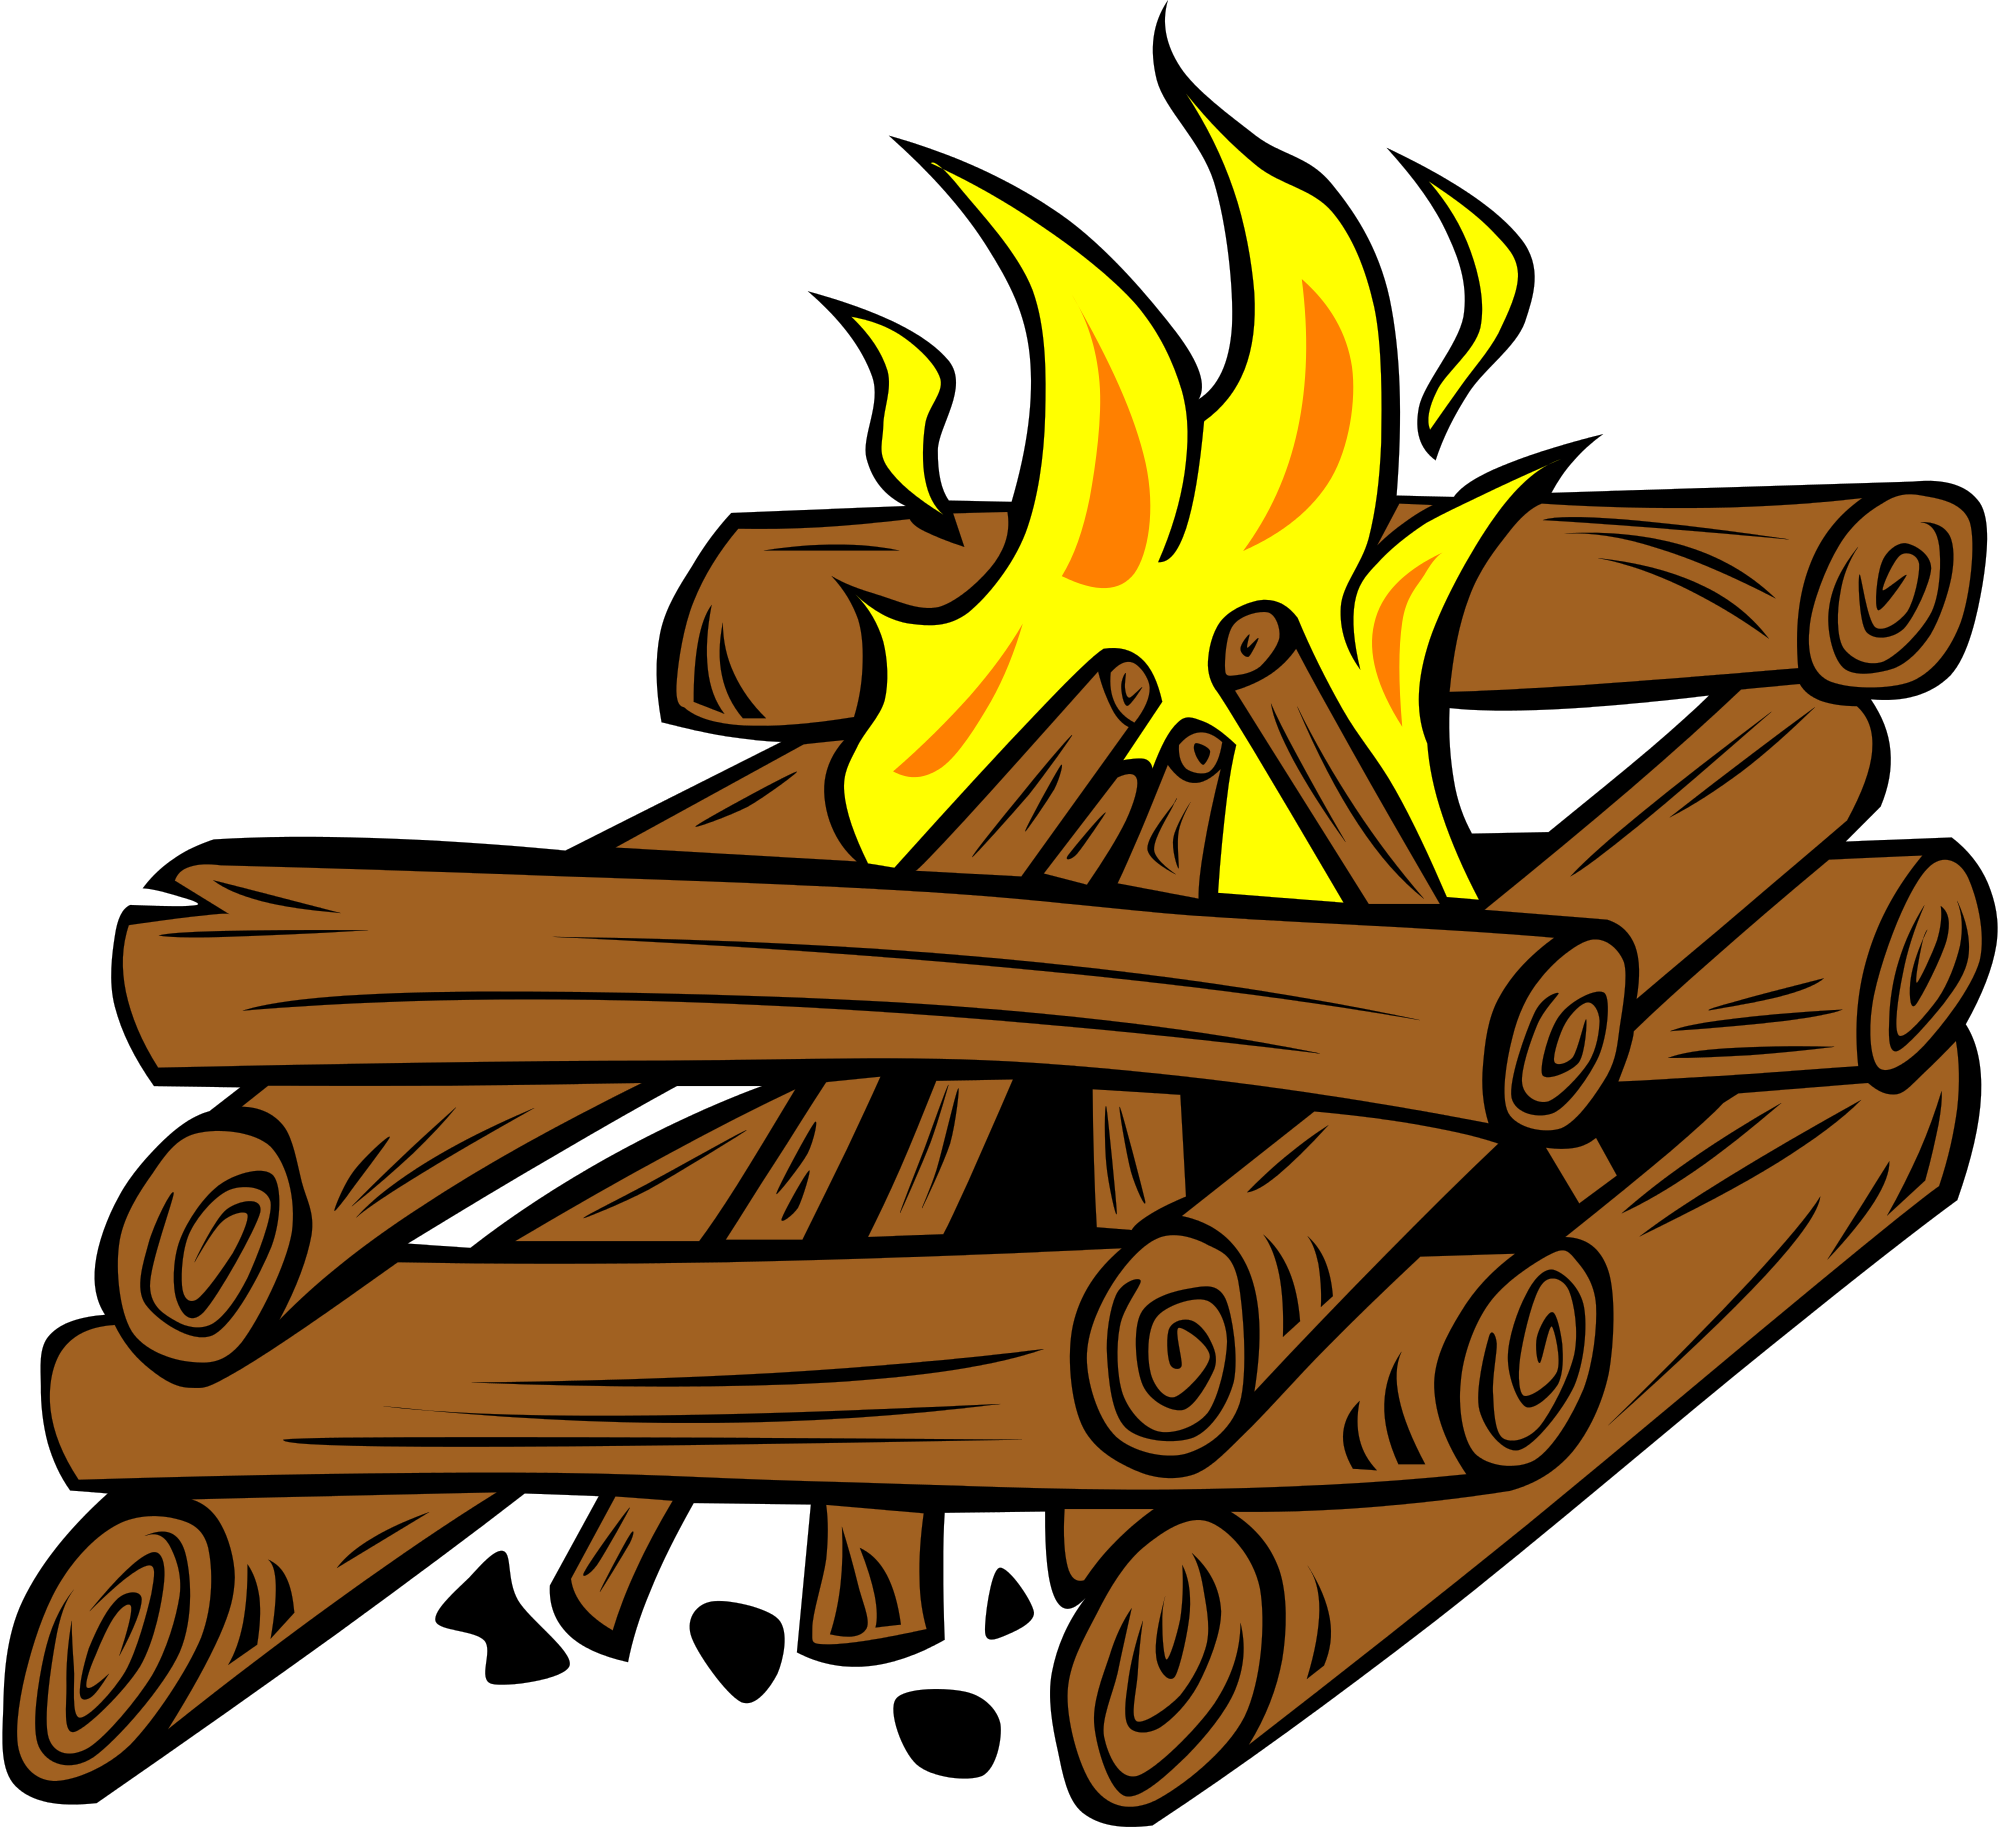 Outdoors clipart camp fire flame. Free picture download clip